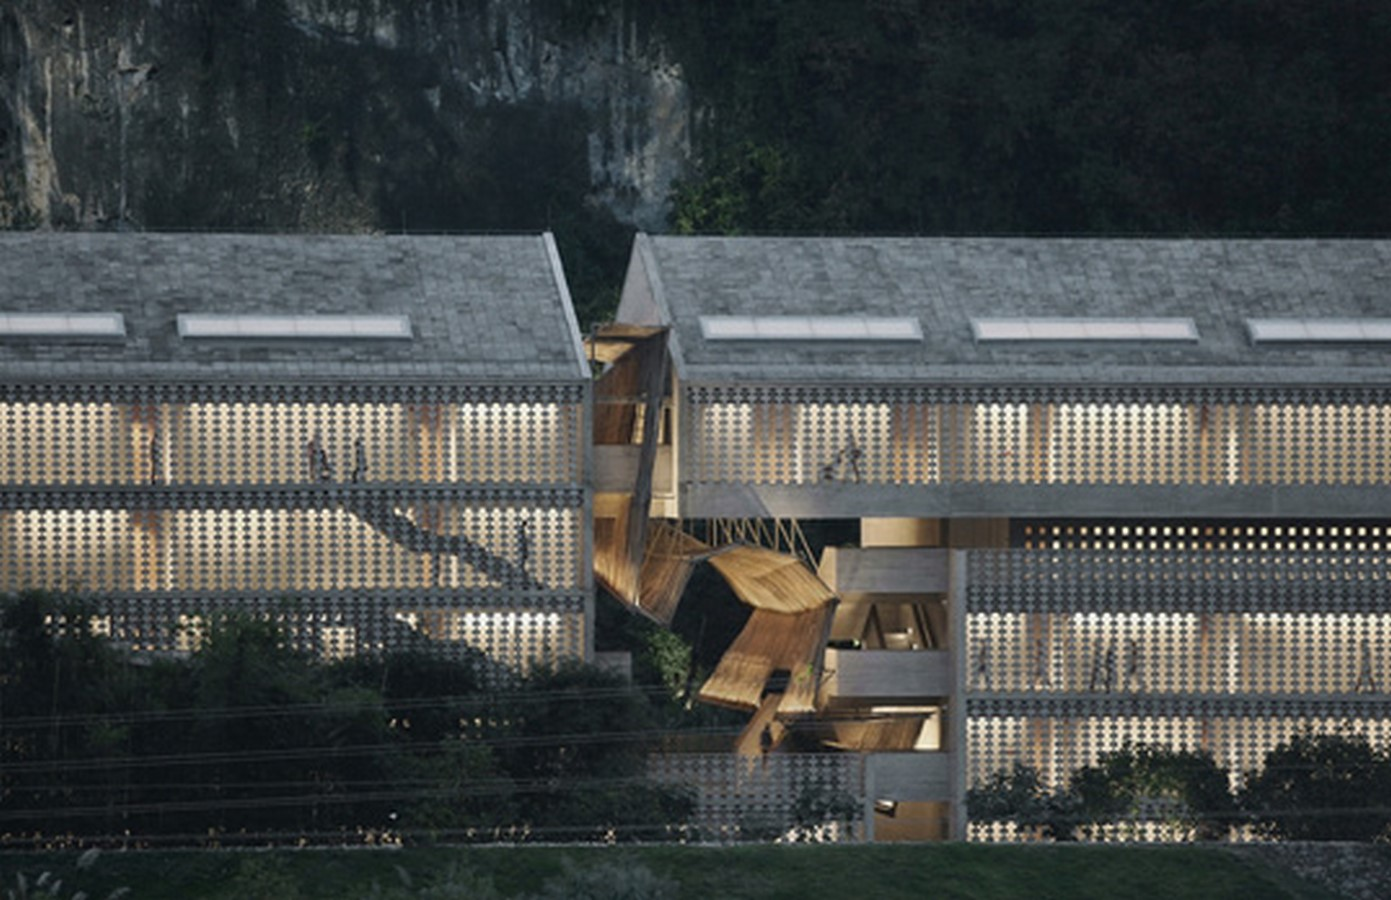 Winners of International Awards for Excellence 2021 announced by RIBA Sheet4